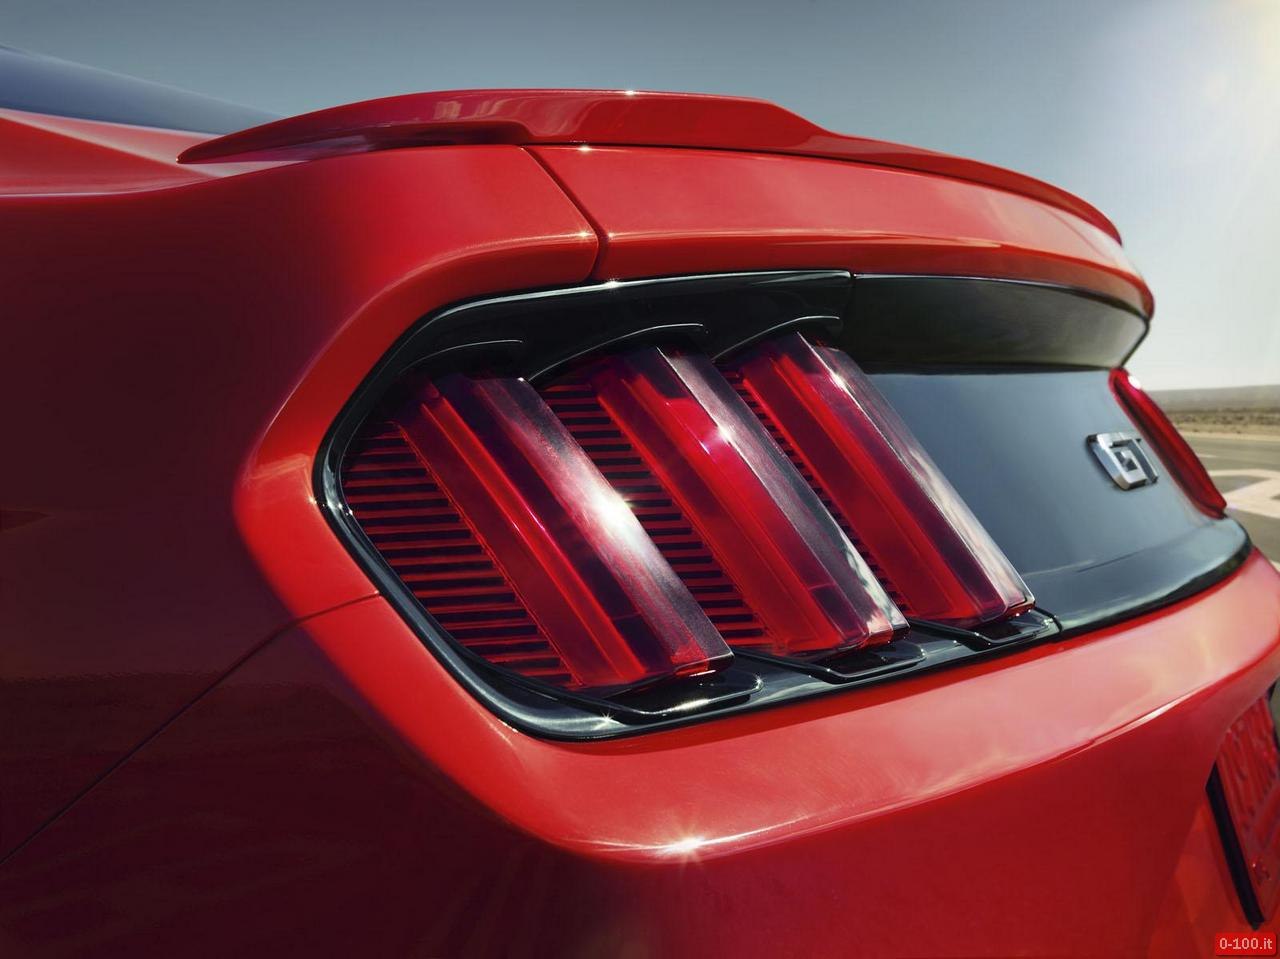 ford-mustang-2300-ecoboost-v8-5000-2014-0-100_36